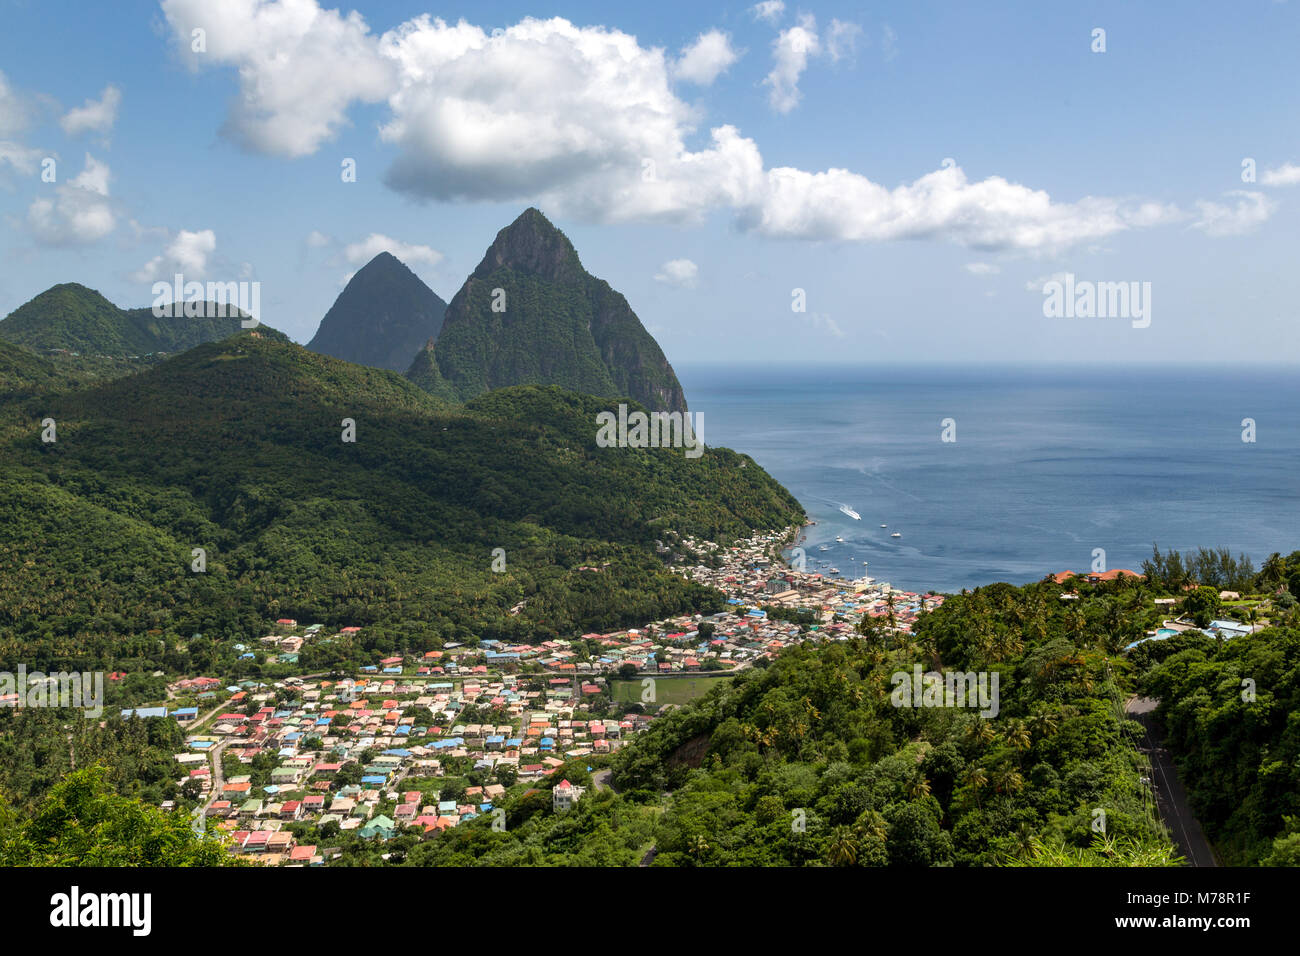 The town of Soufriere with the Pitons, UNESCO World Heritage Site, beyond, St. Lucia, Windward Islands, West Indies - Stock Image